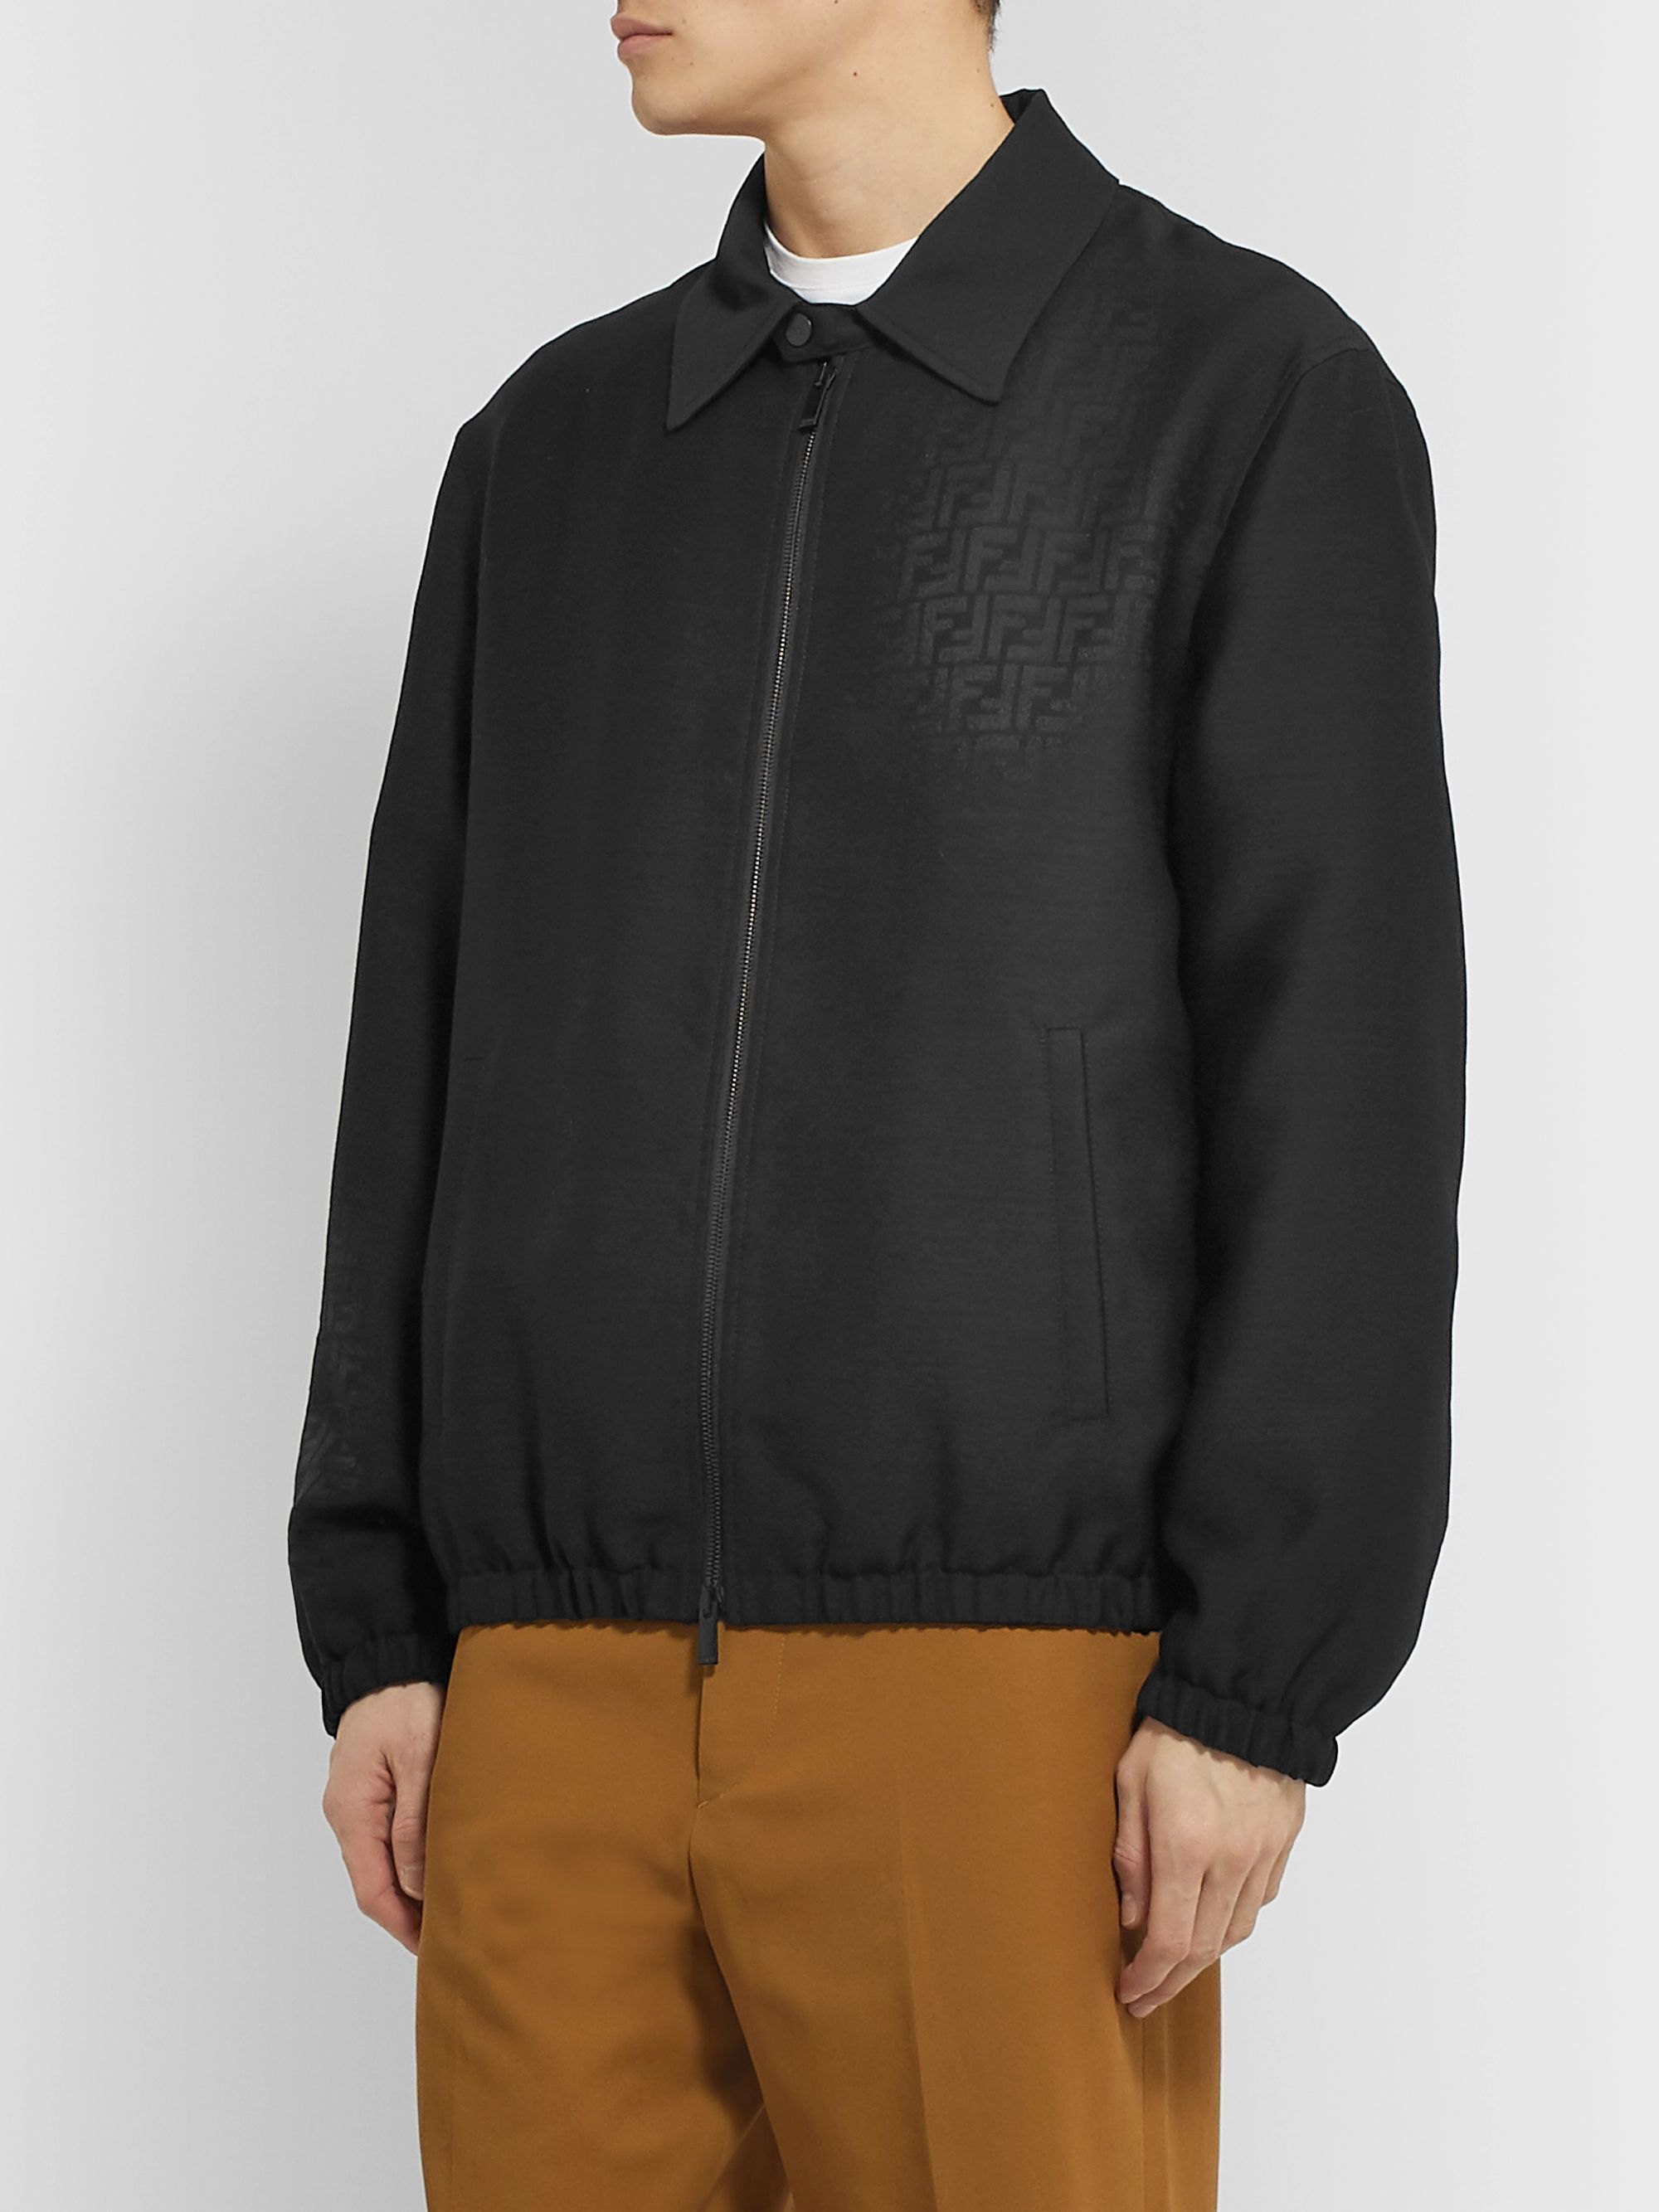 Fendi Wool and Silk-Blend Jacquard Bomber Jacket